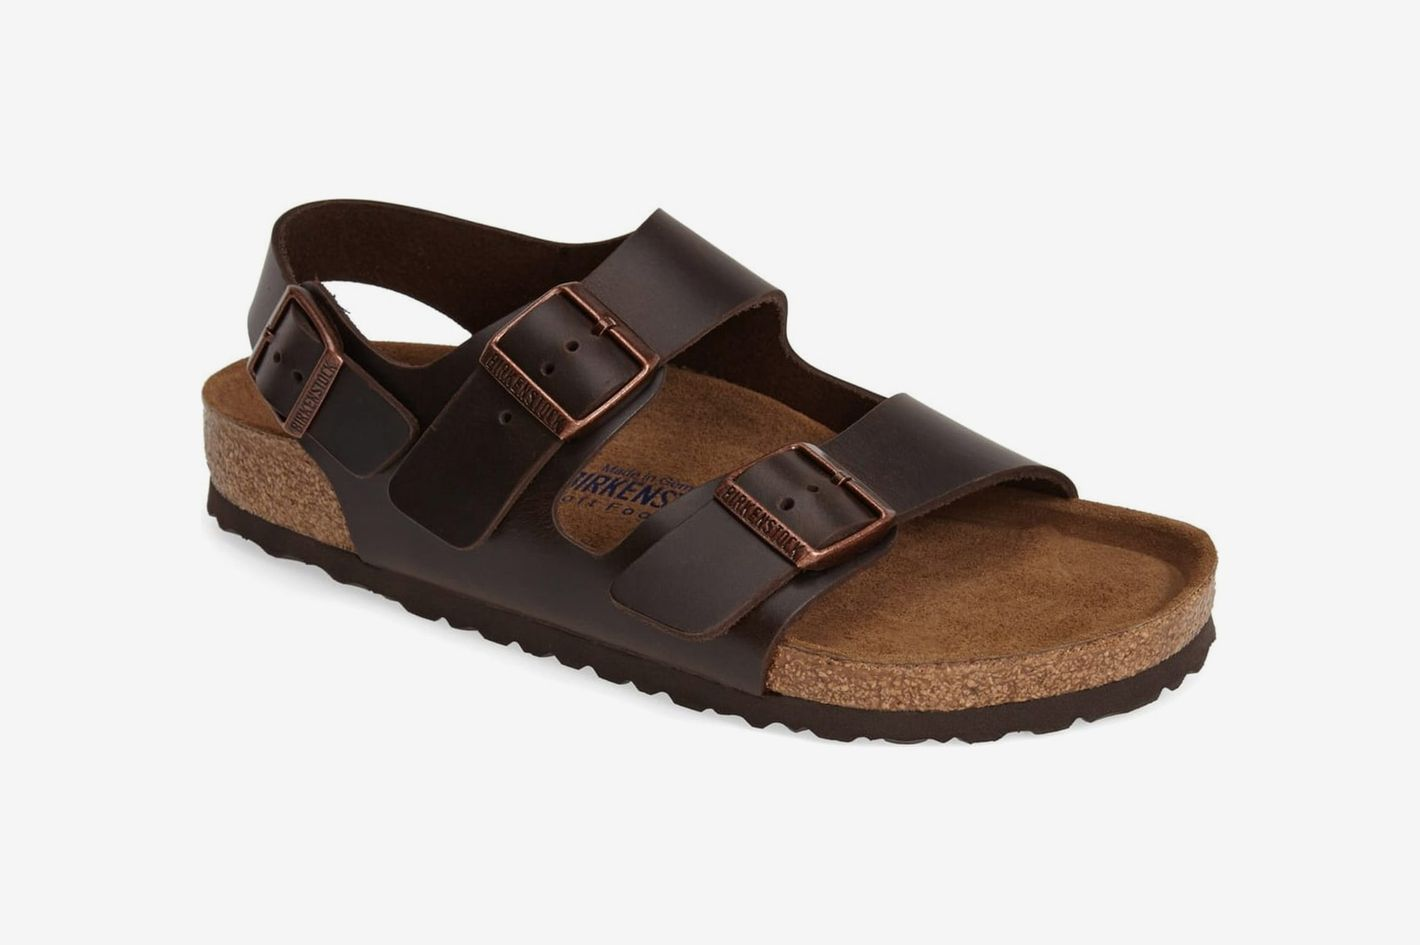 108991cab18 27 Birkenstocks for Men and Women 2018